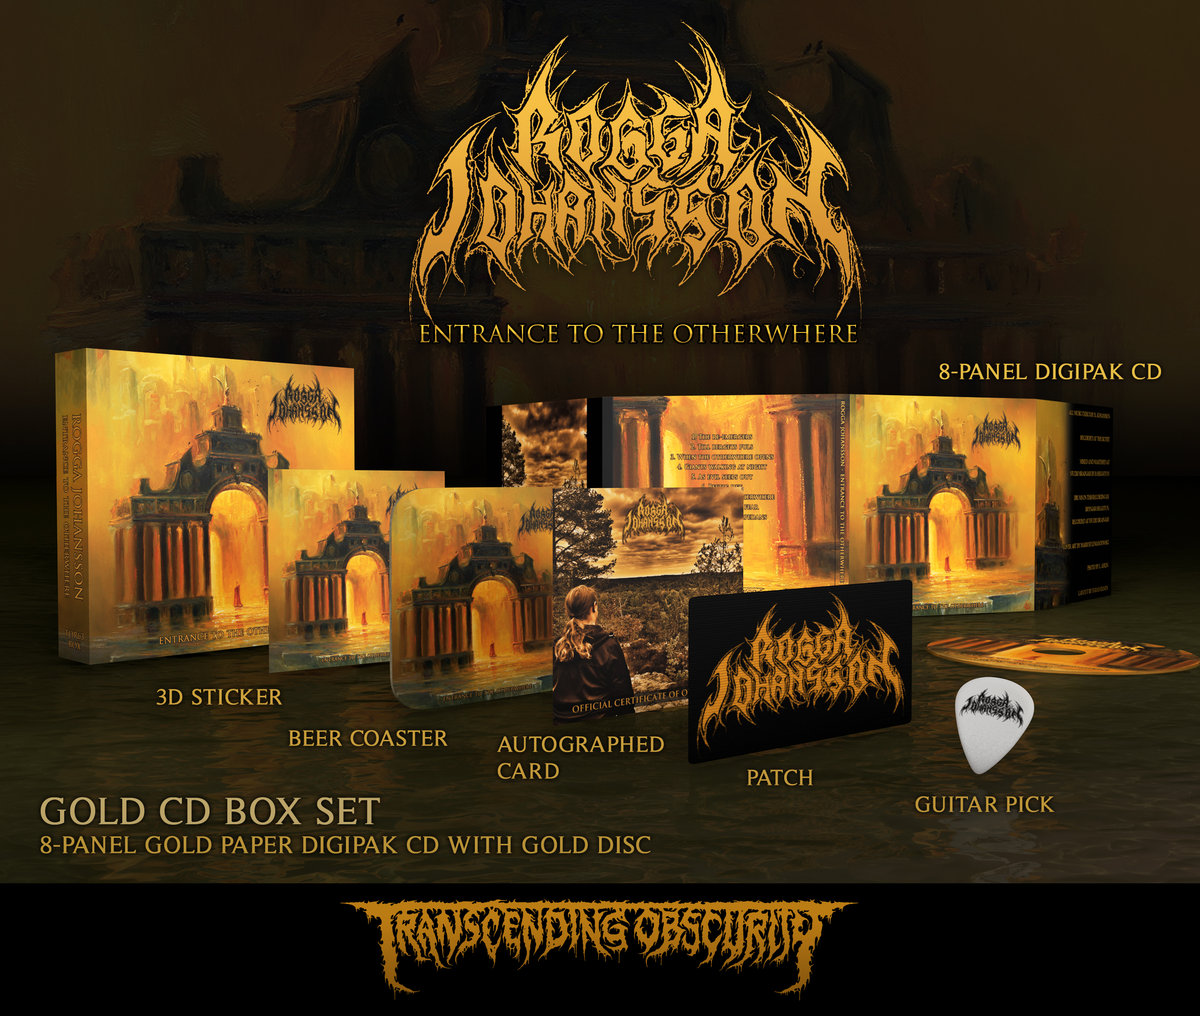 ROGGA JOHANSSON - Entrance to the Otherwhere (Death Metal) Autographed Gold CD Box Set (Limited to 150)